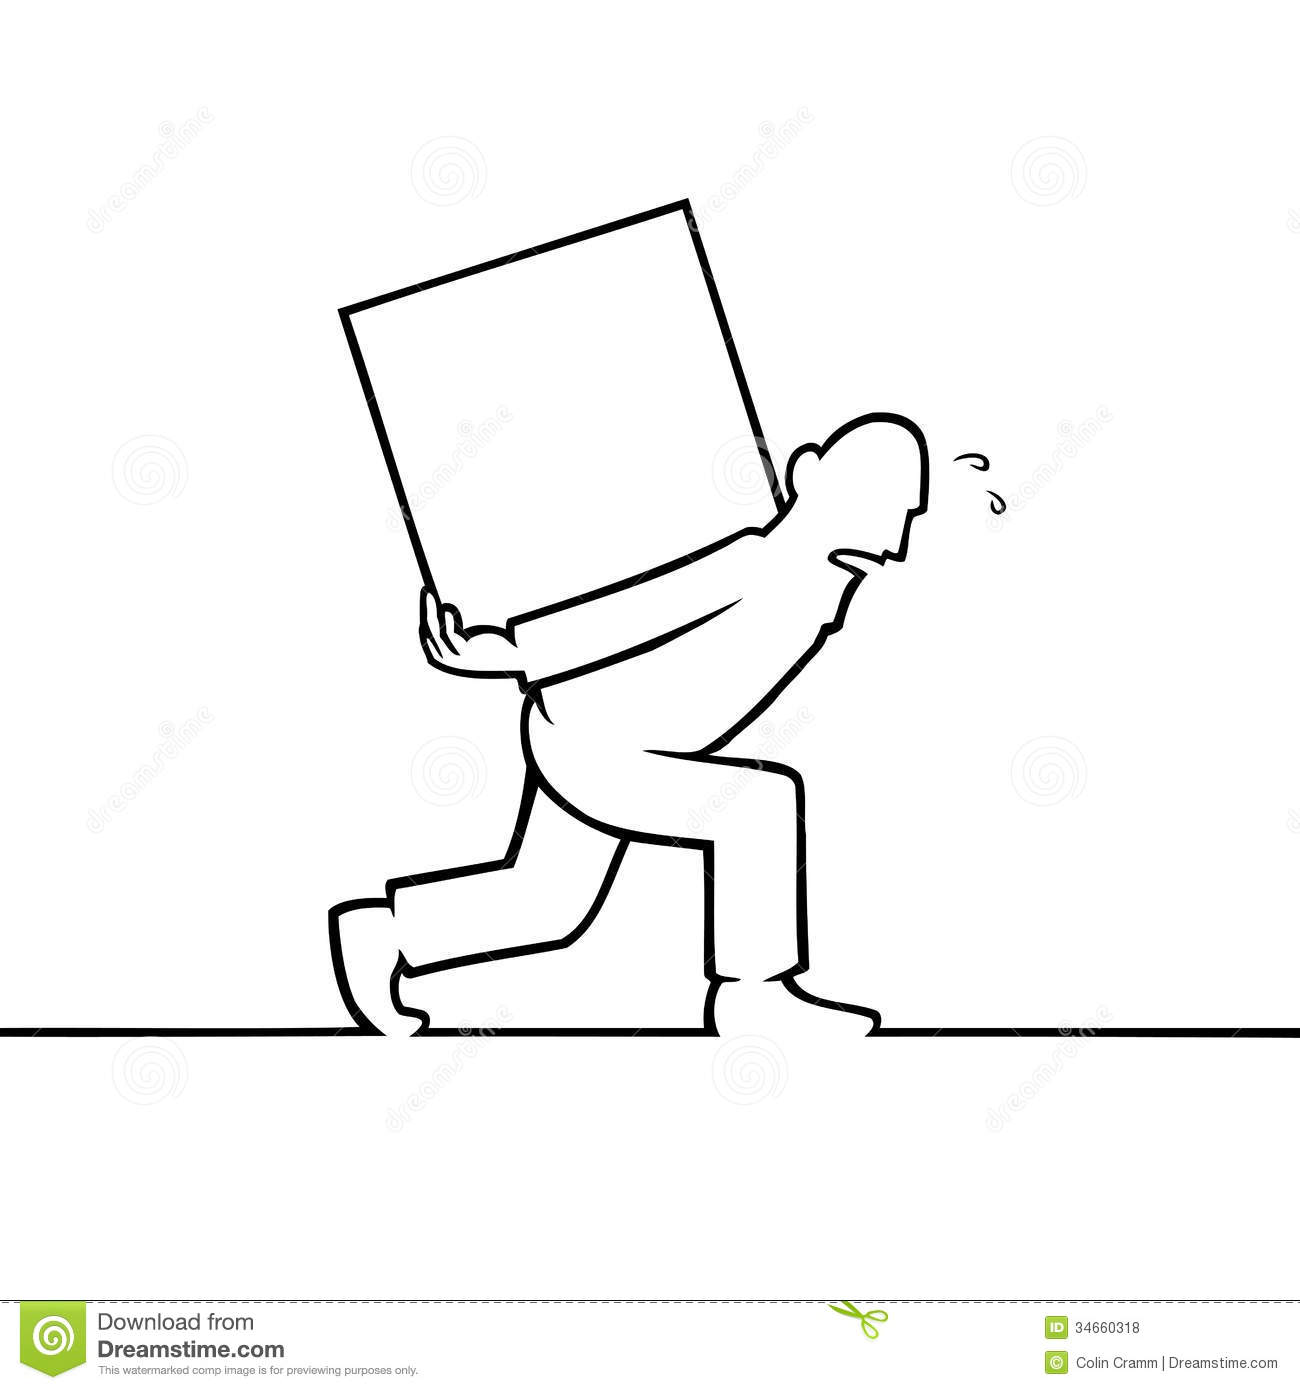 Clipart man carrying heavy load.